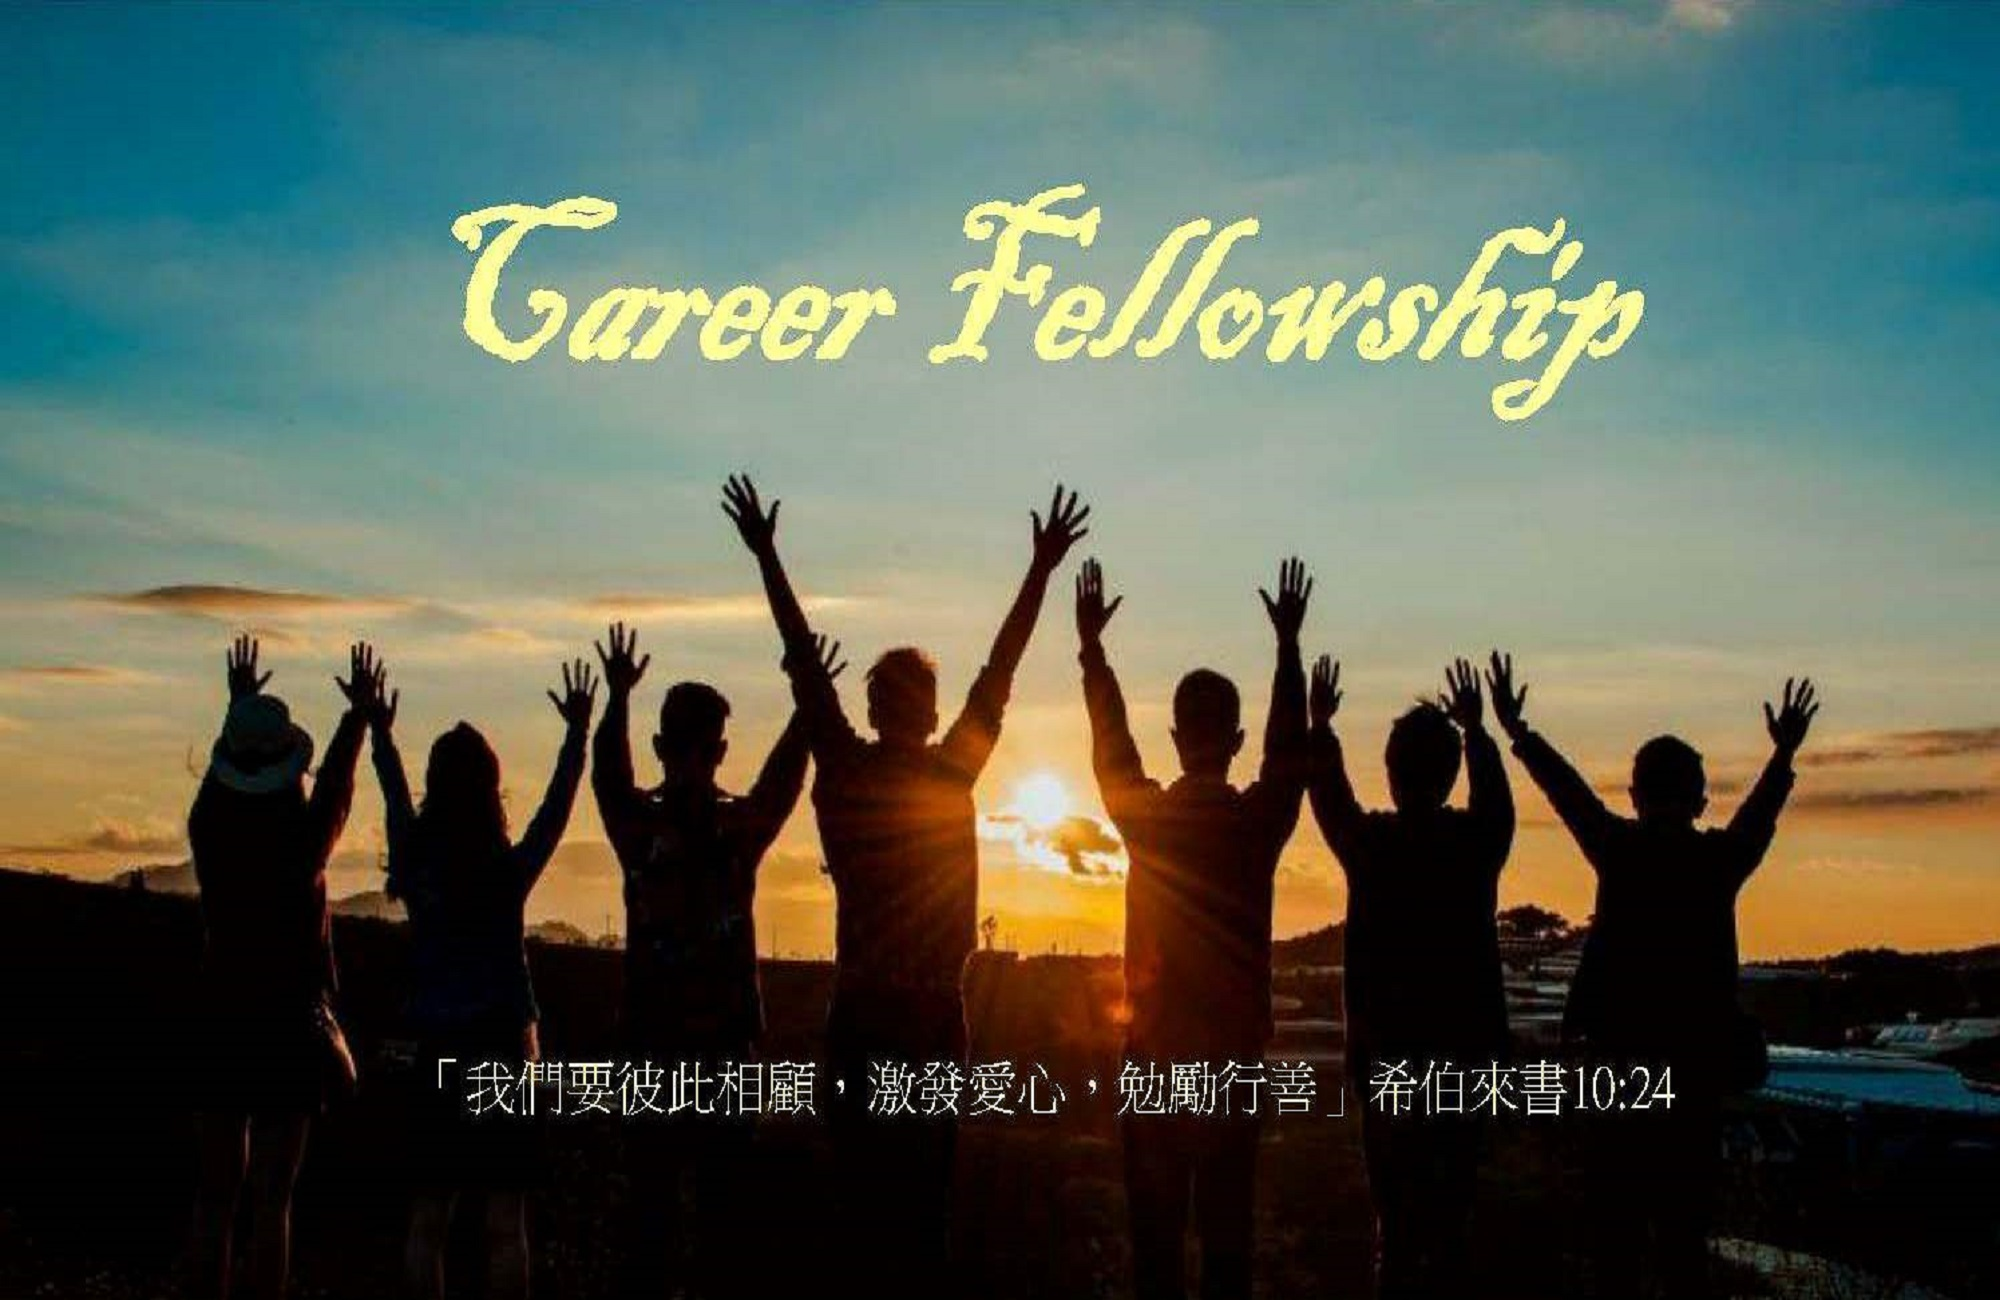 Career Fellowship